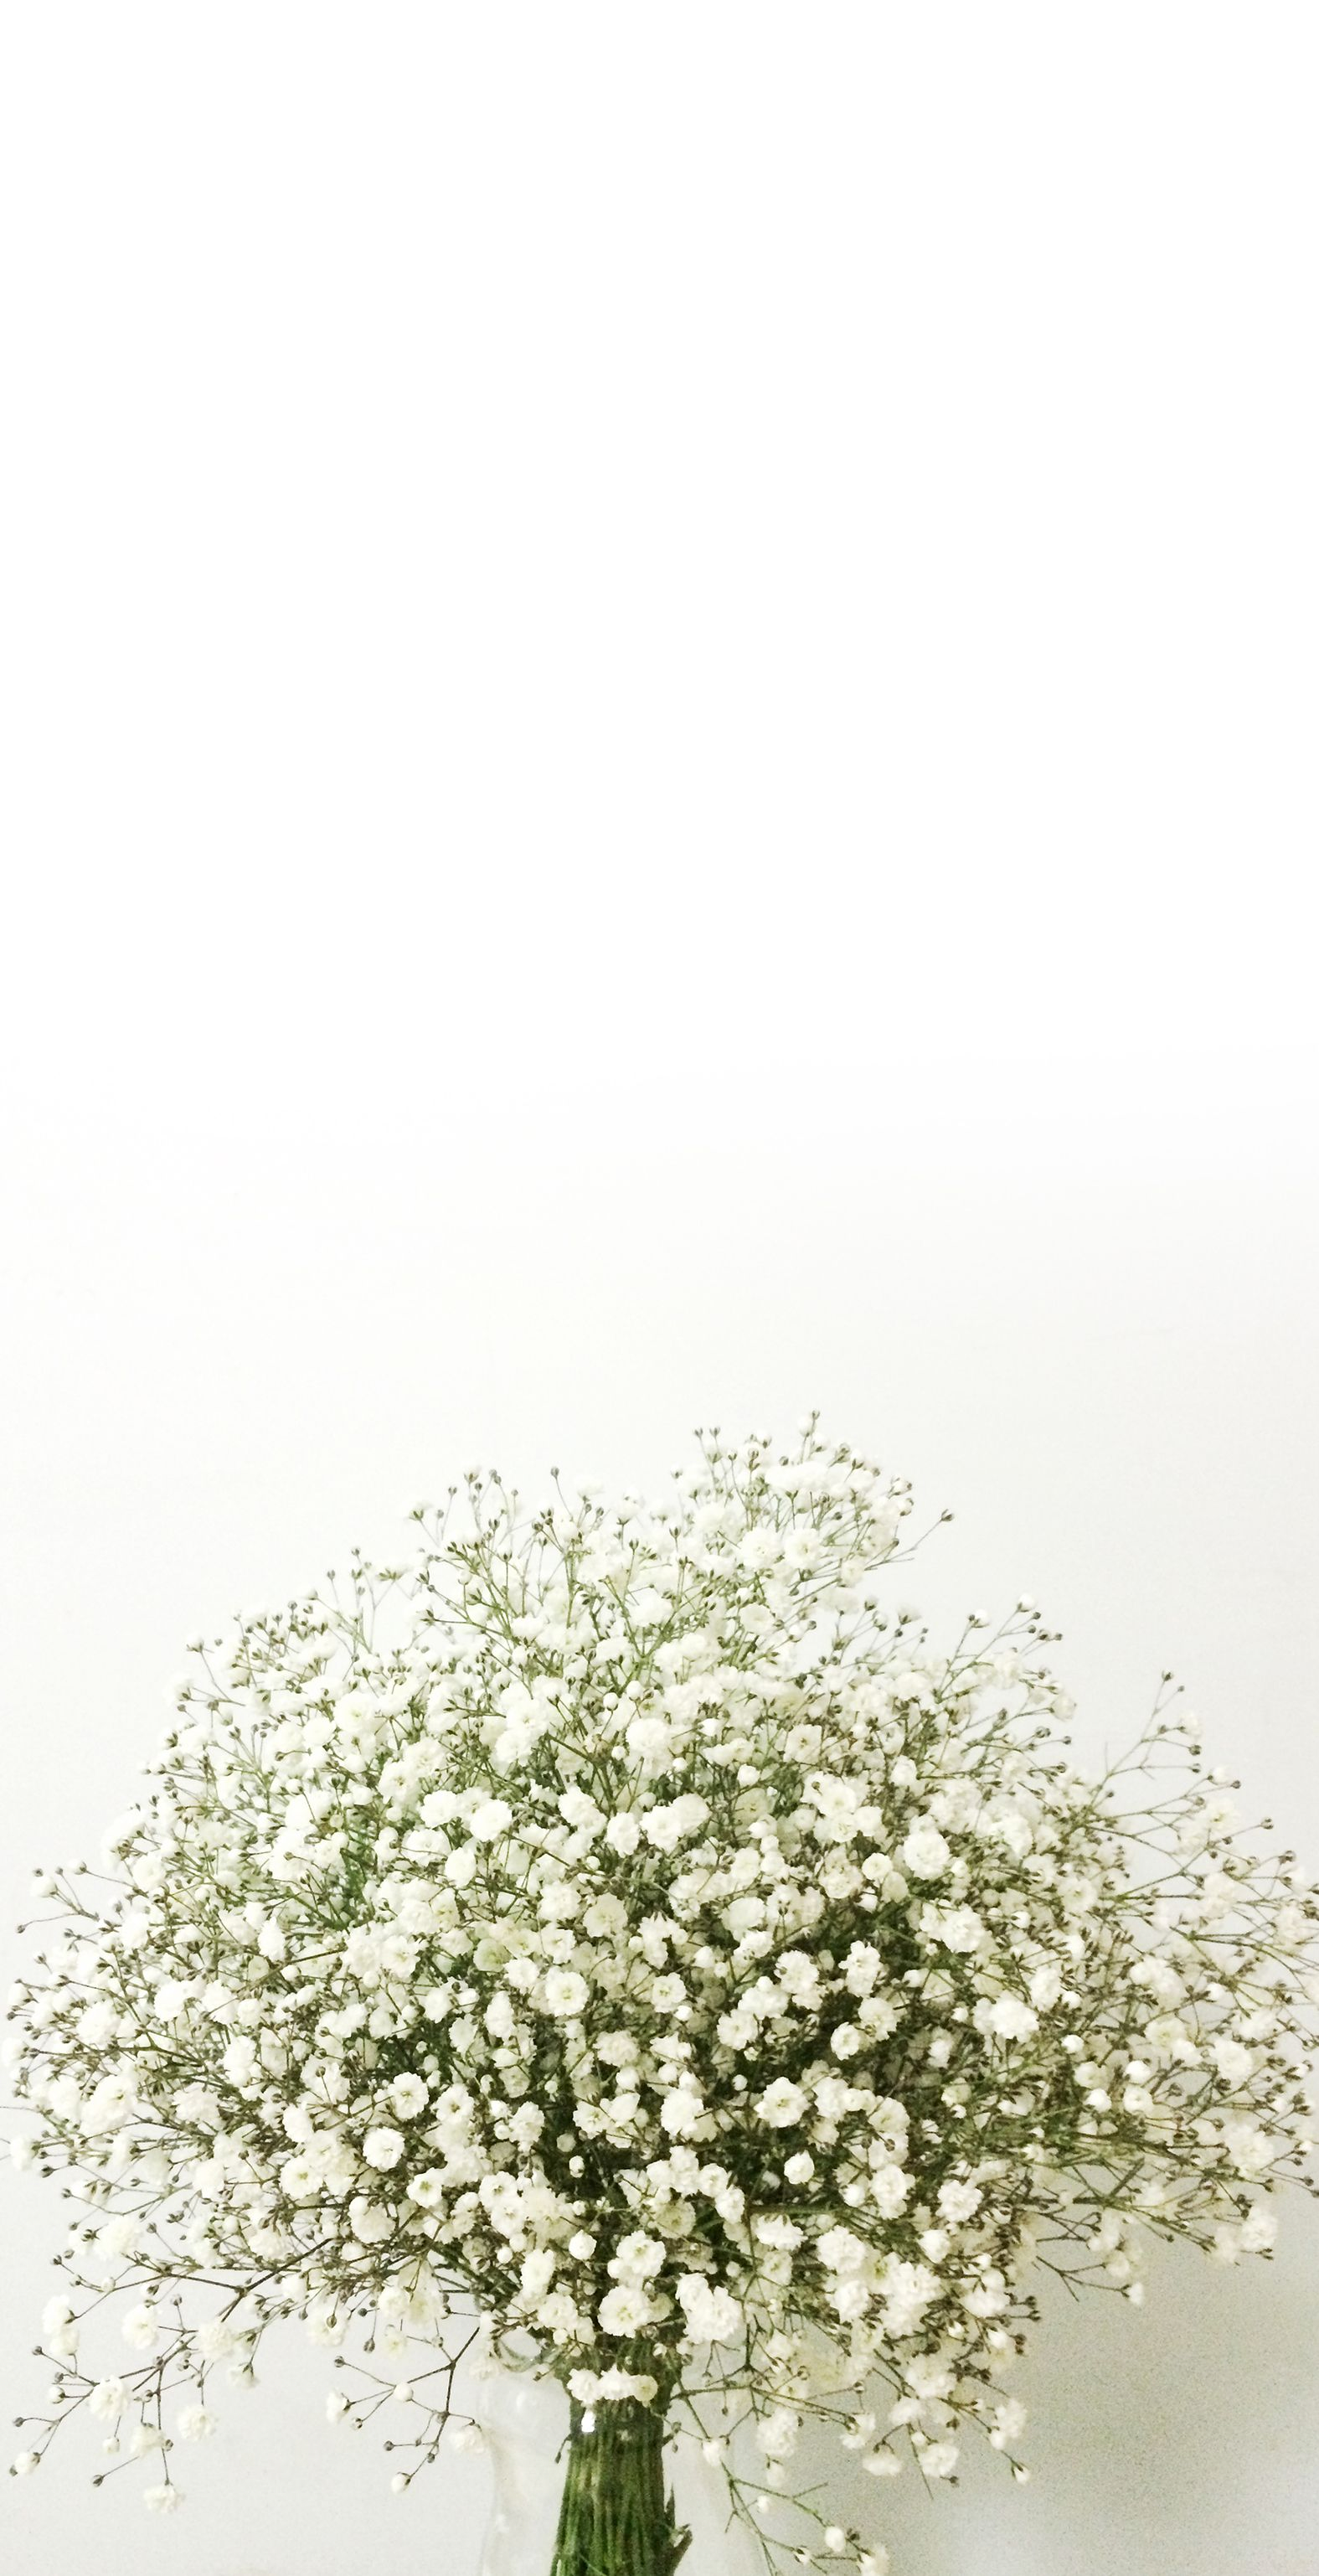 100 Spring iPhone Wallpapers, iPhone background, iPhone screen,iPhone wallpapers , wallpapers , phone background